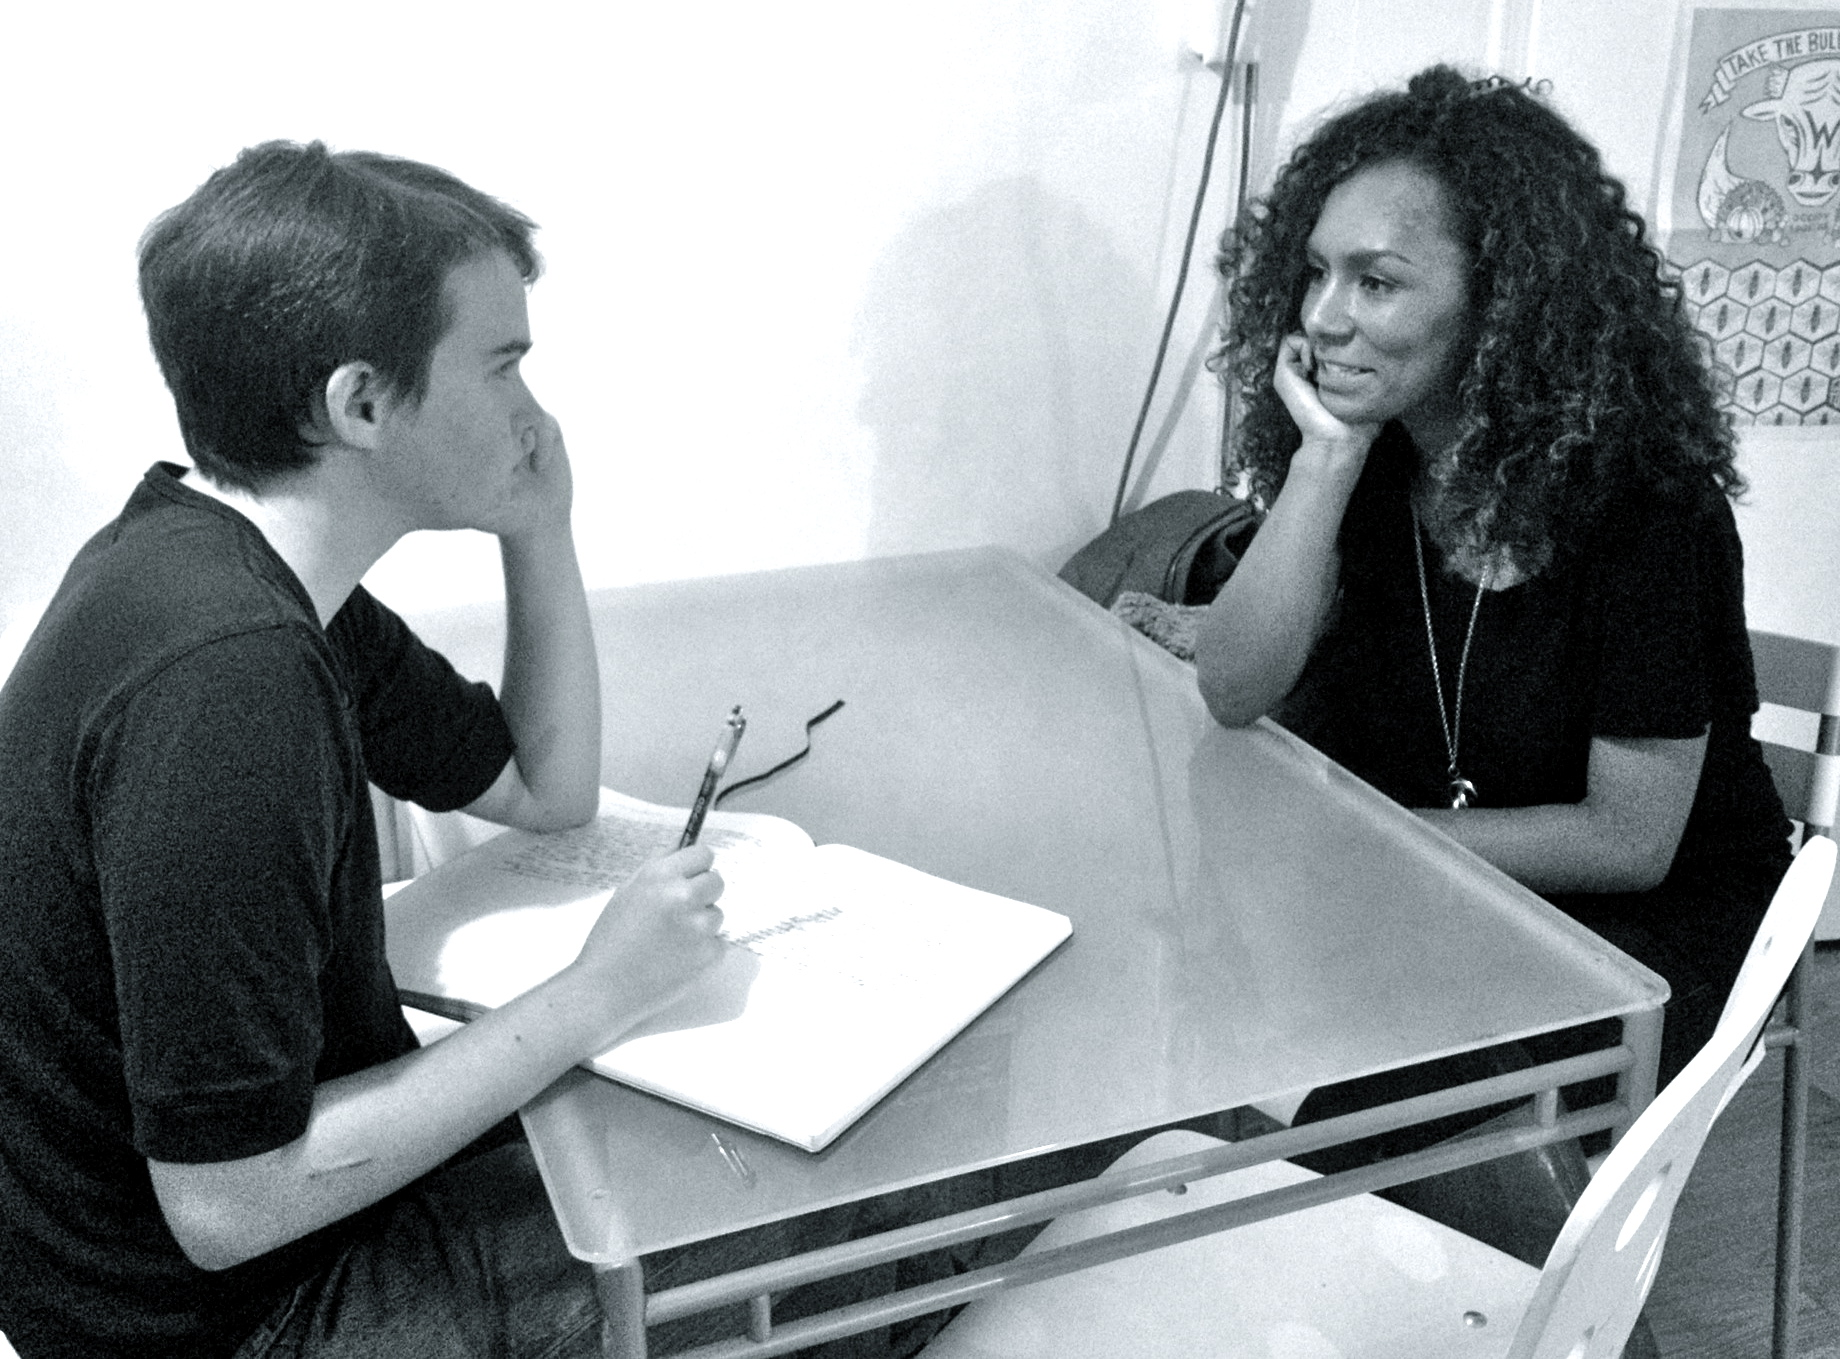 SRLP10 Honoree Profile: When Janet Mock talks about Sylvia Rivera on Twitter